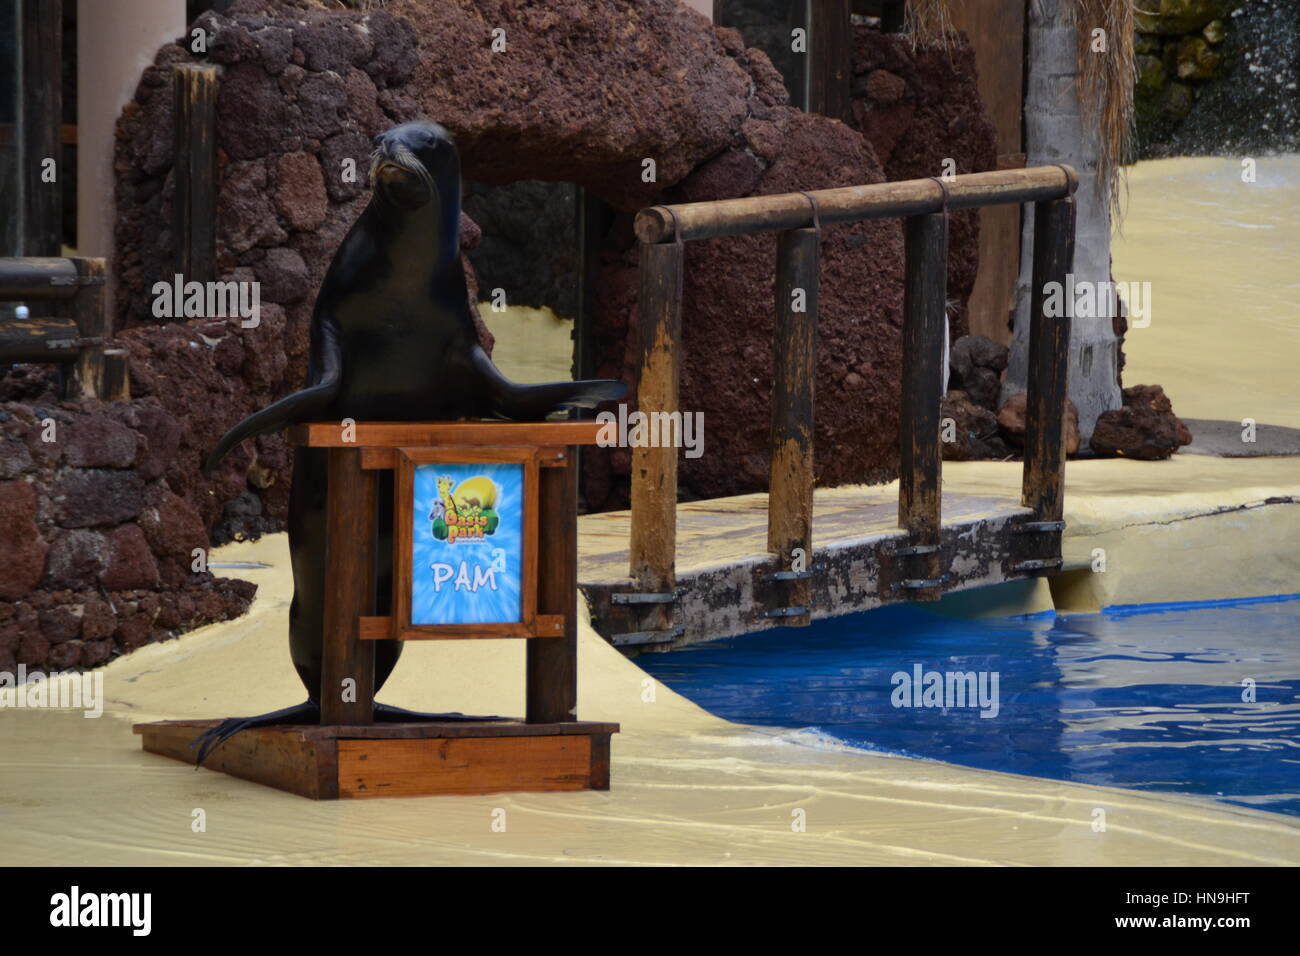 A sea lion is an aquatic mammal generally found in shallow waters. They learnt it to make a show in pool. Stock Photo